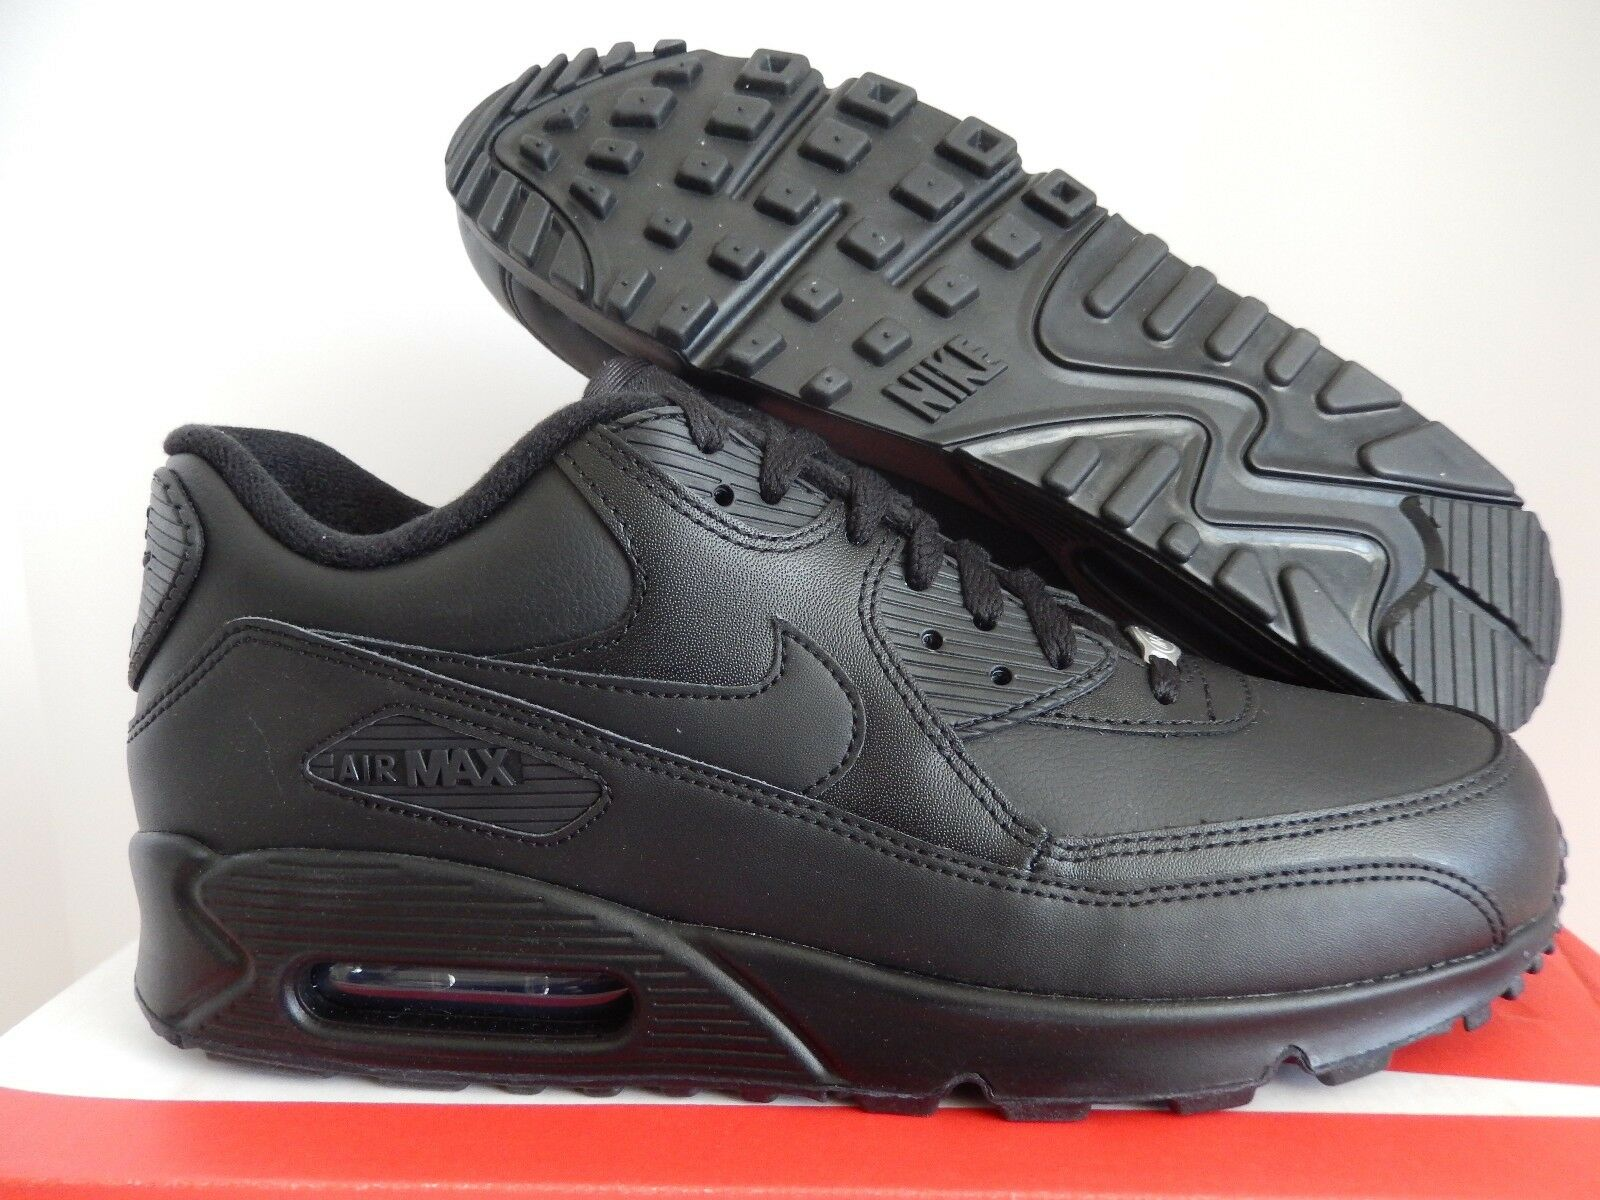 NIKE AIR MAX 90 LEATHER BLACK-BLACK SZ 9 [302519-001]